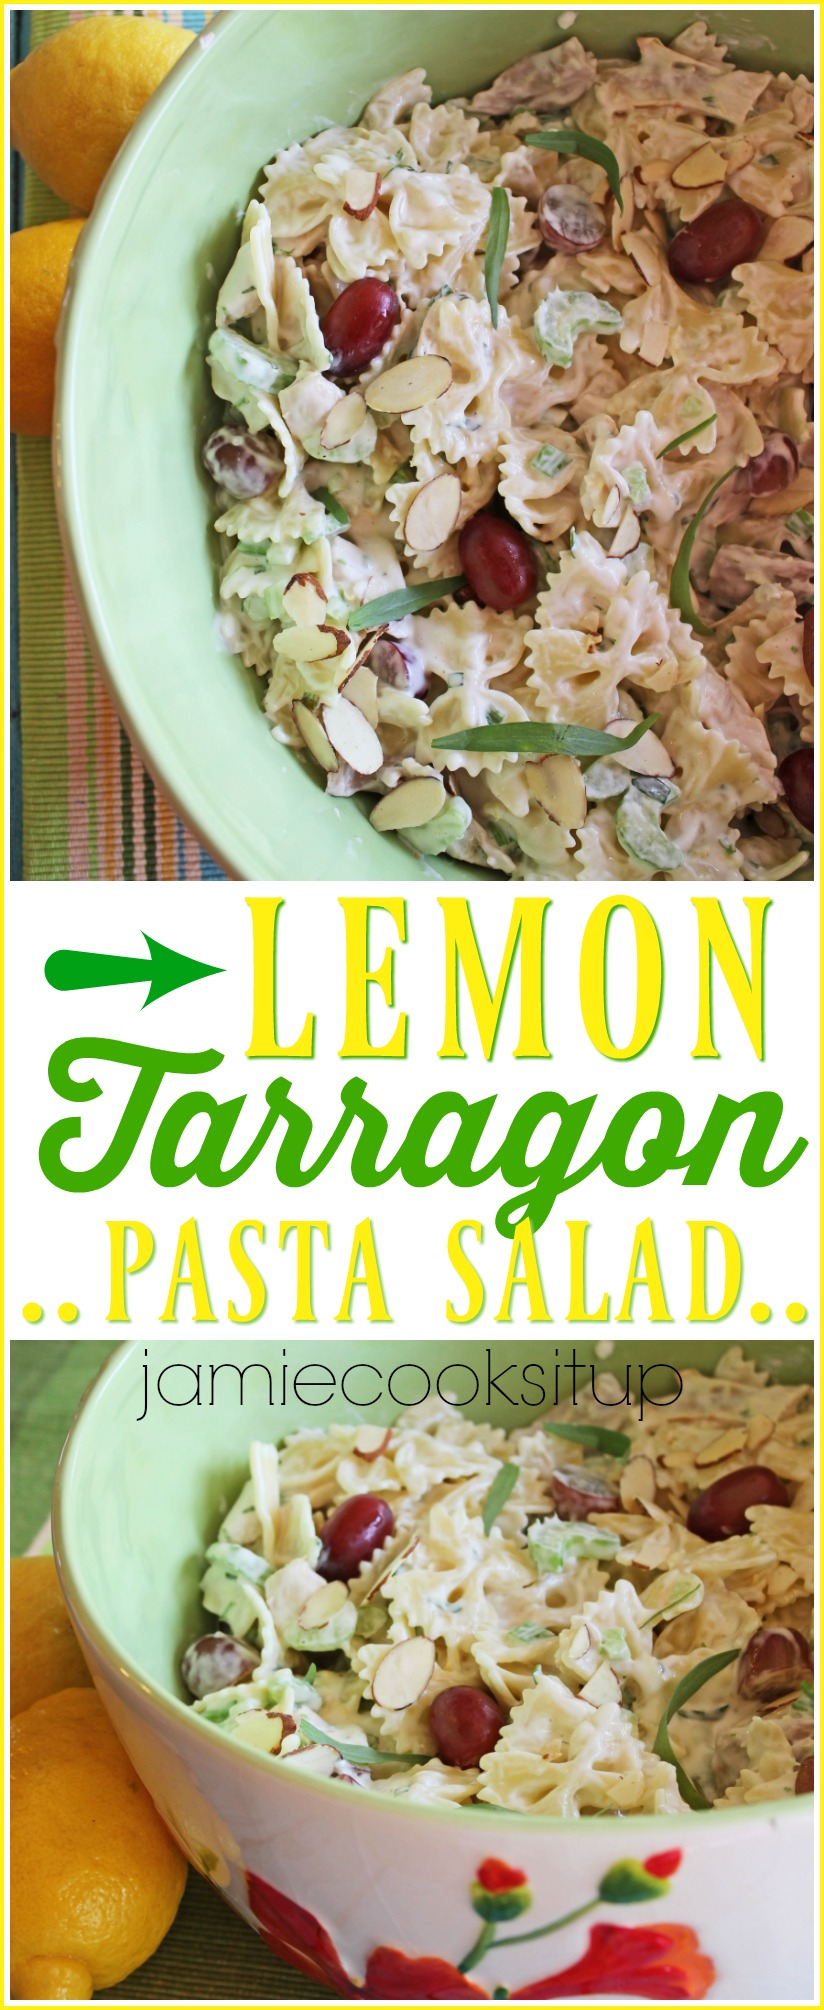 lemon-tarragon-pasta-salad-from-jamie-cooks-it-up